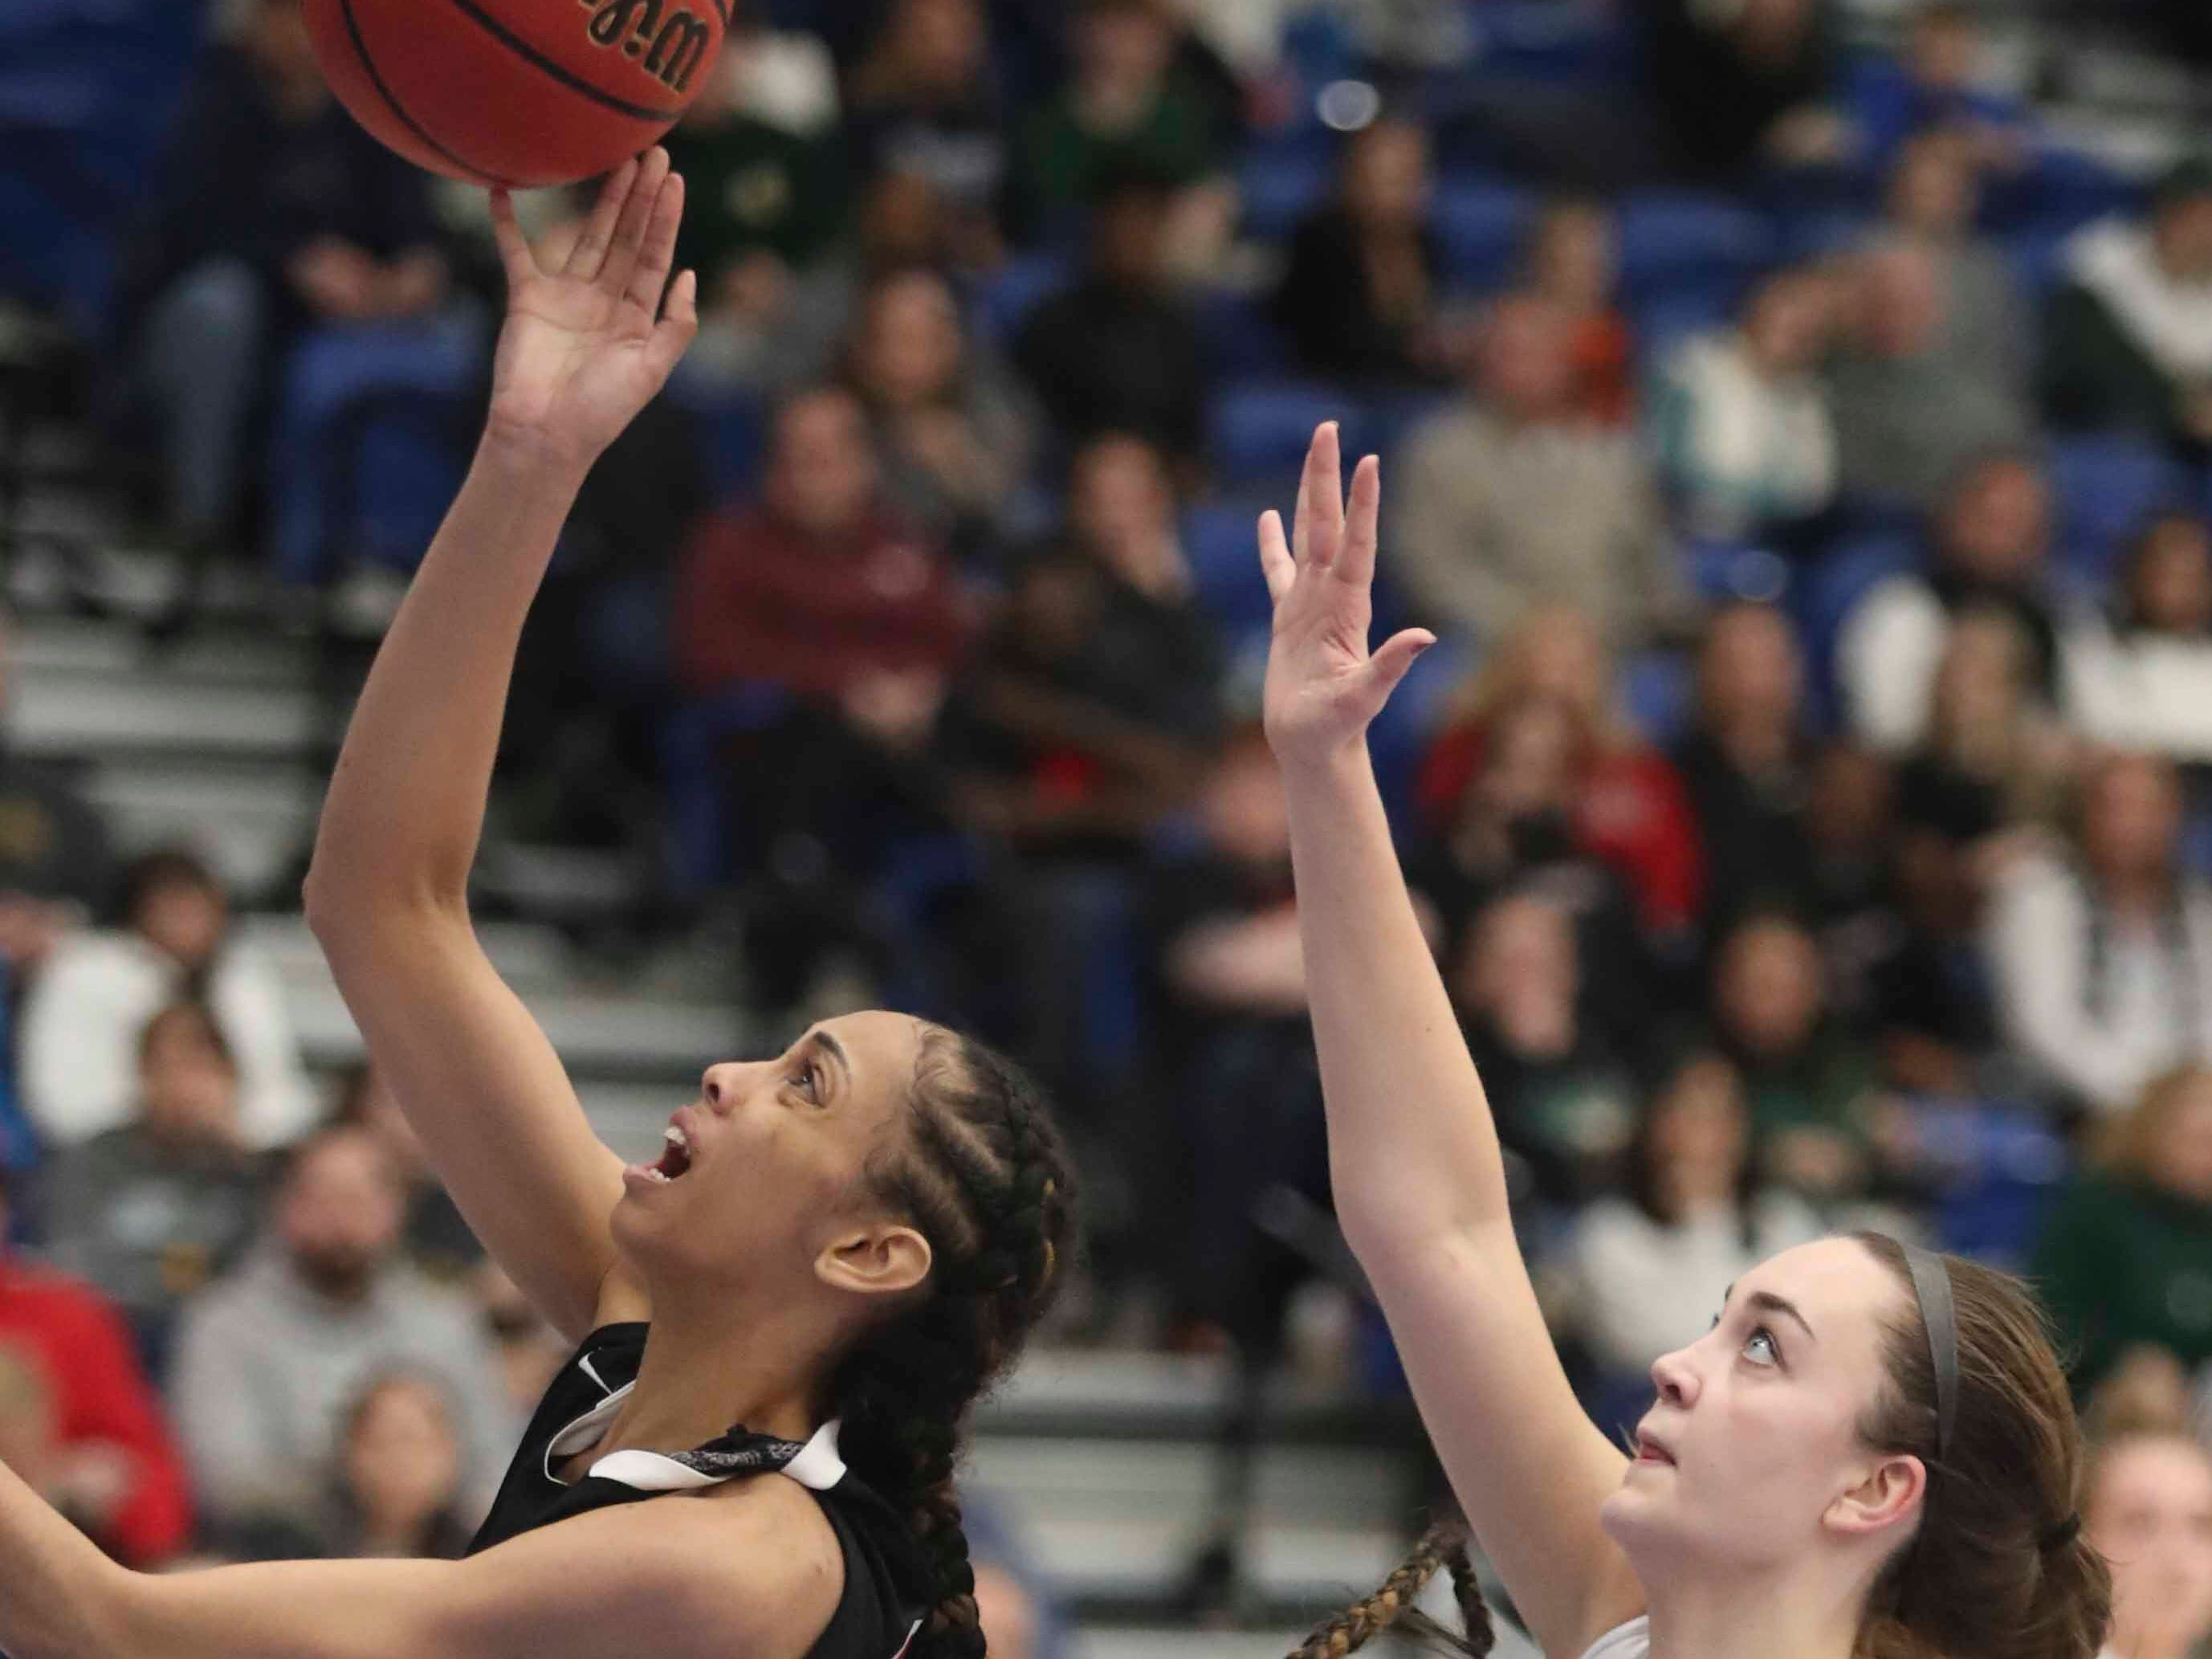 Ursuline's Kaleigh White (left) scores ahead of St. Mark's Kayla Wolff in the SL24 Memorial Basketball Classic at the 76ers Fieldhouse in Wilmington Friday.